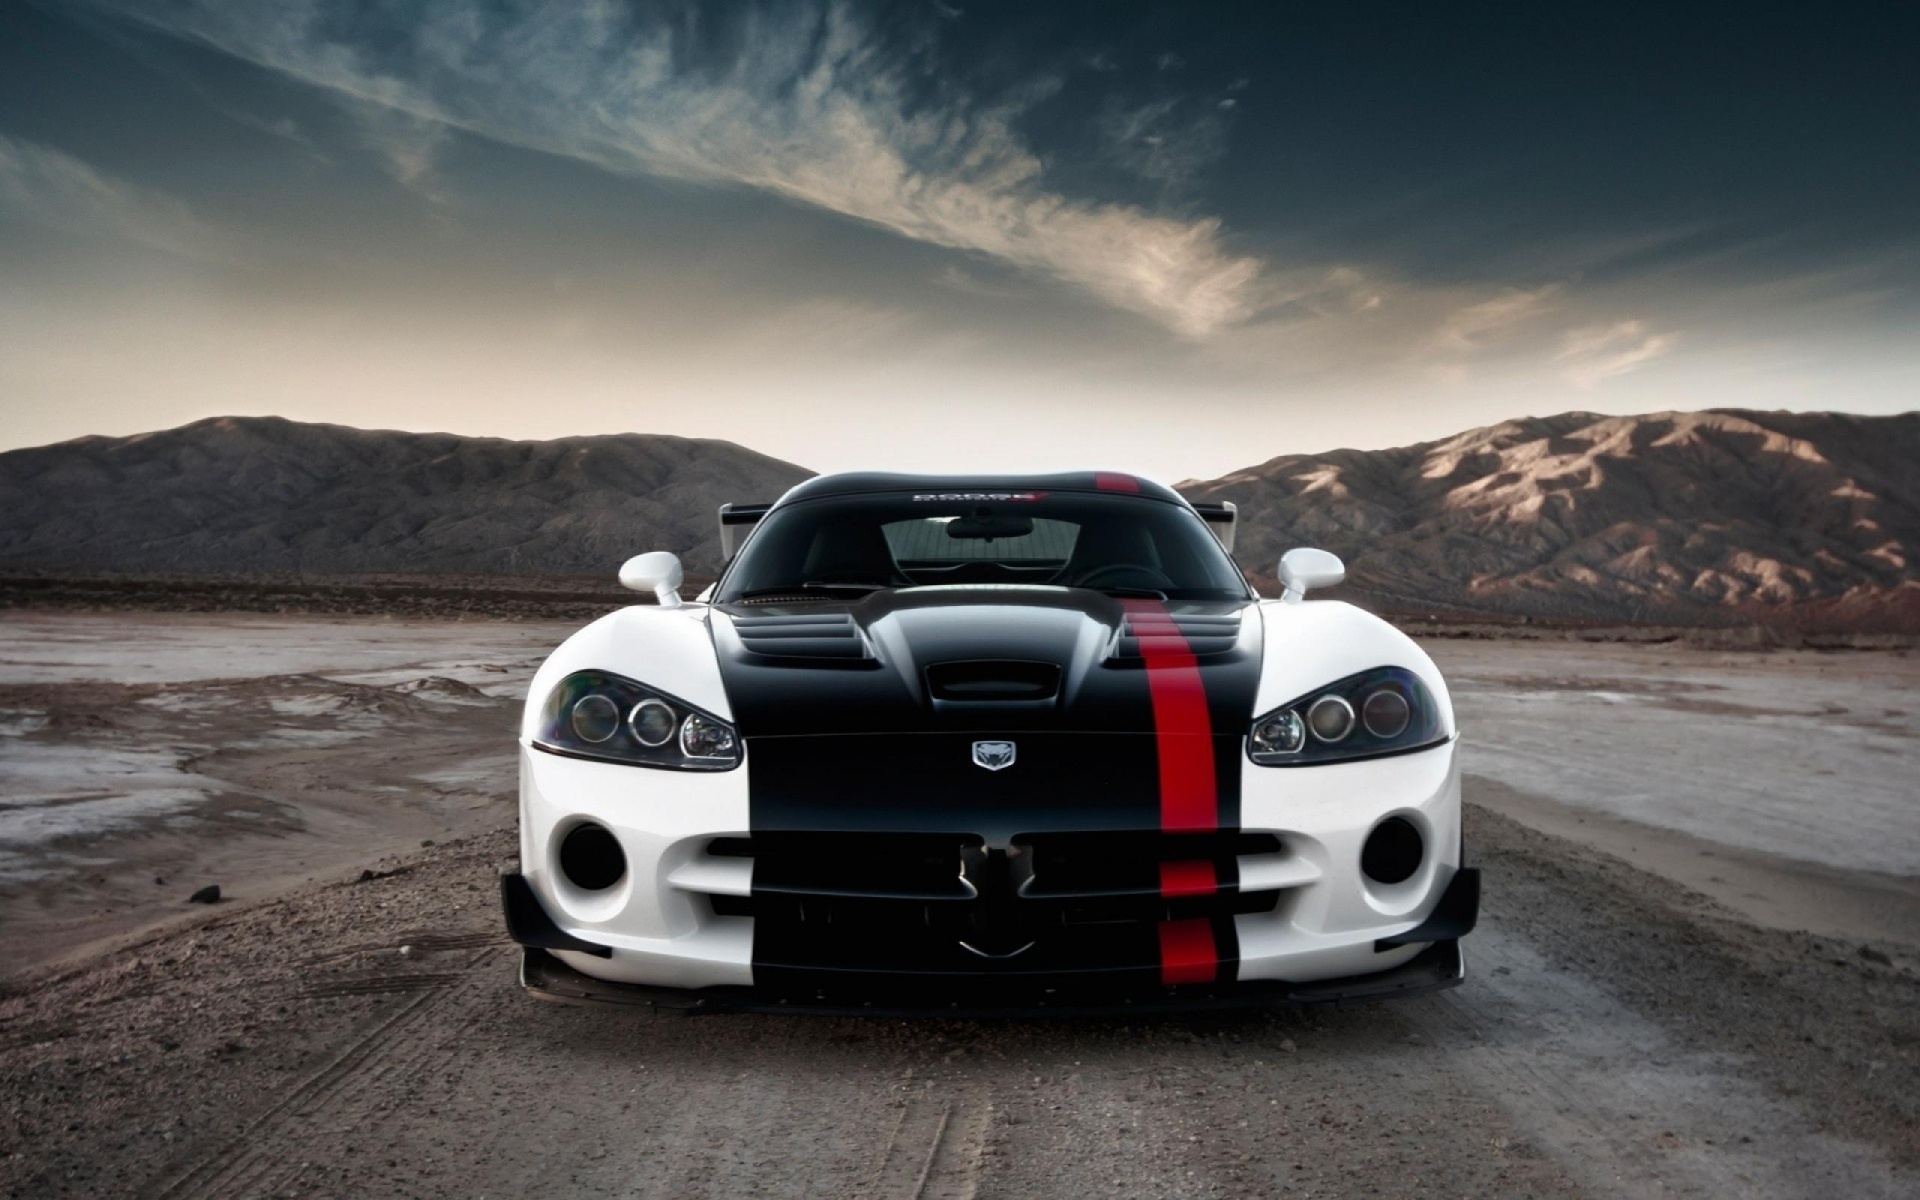 Black And White Dodge Viper Car Widescreen wallpaper